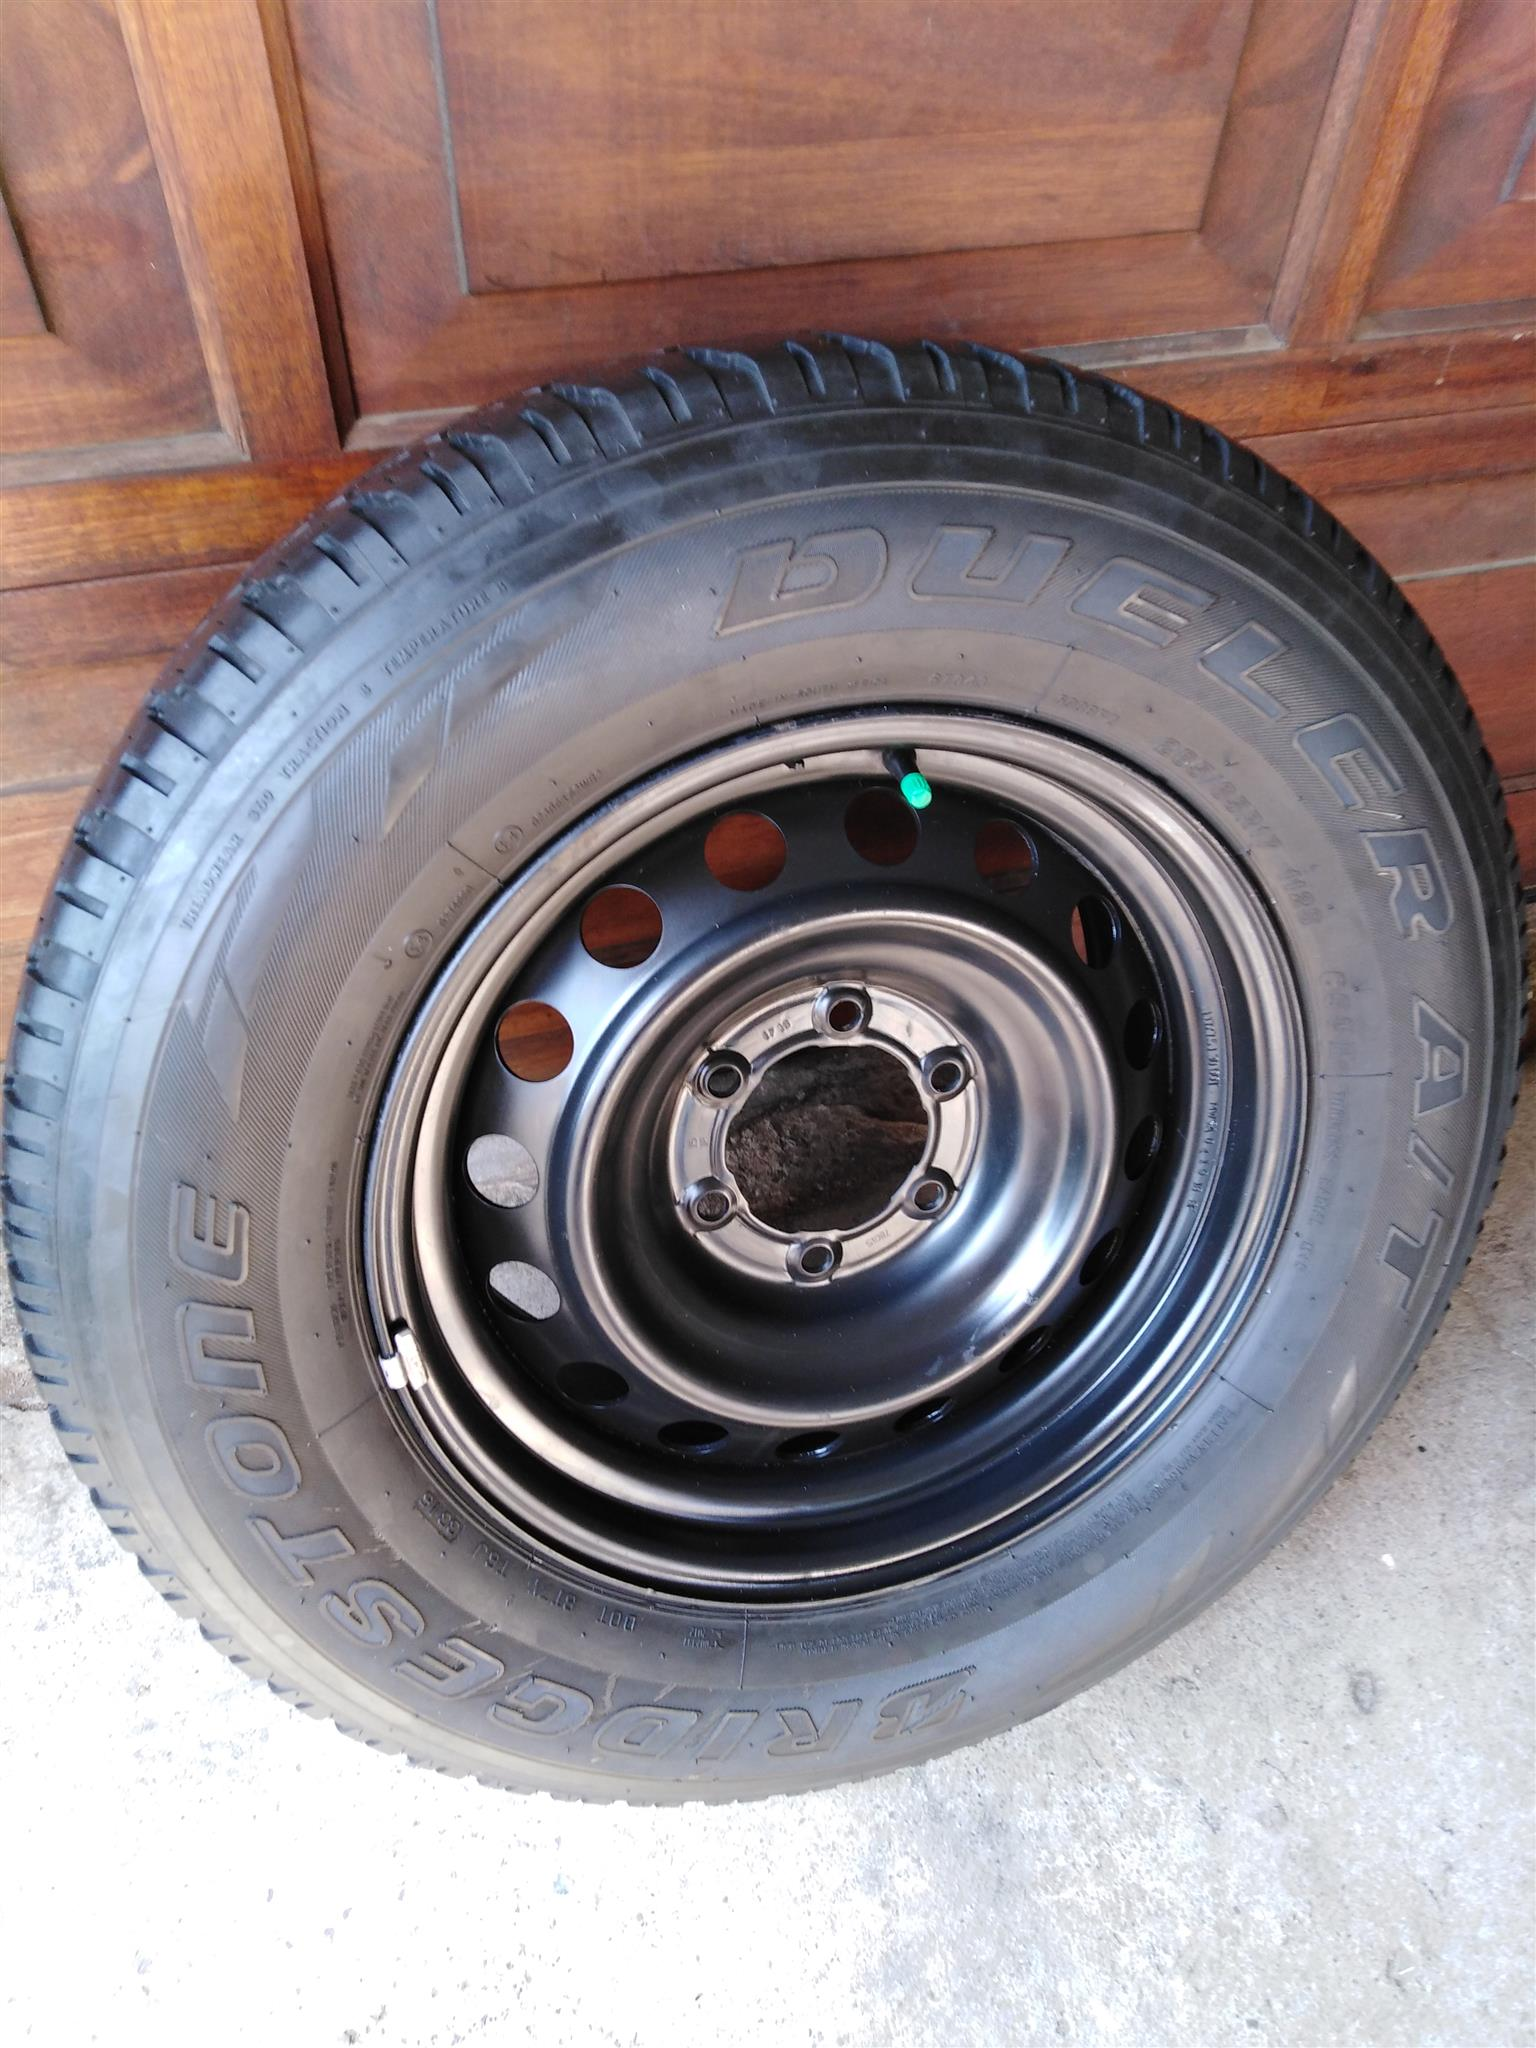 One Toyota Fortuner 17 inch Original Steel Spare Wheel with Bridgestone  Tyre R1850 | Junk Mail